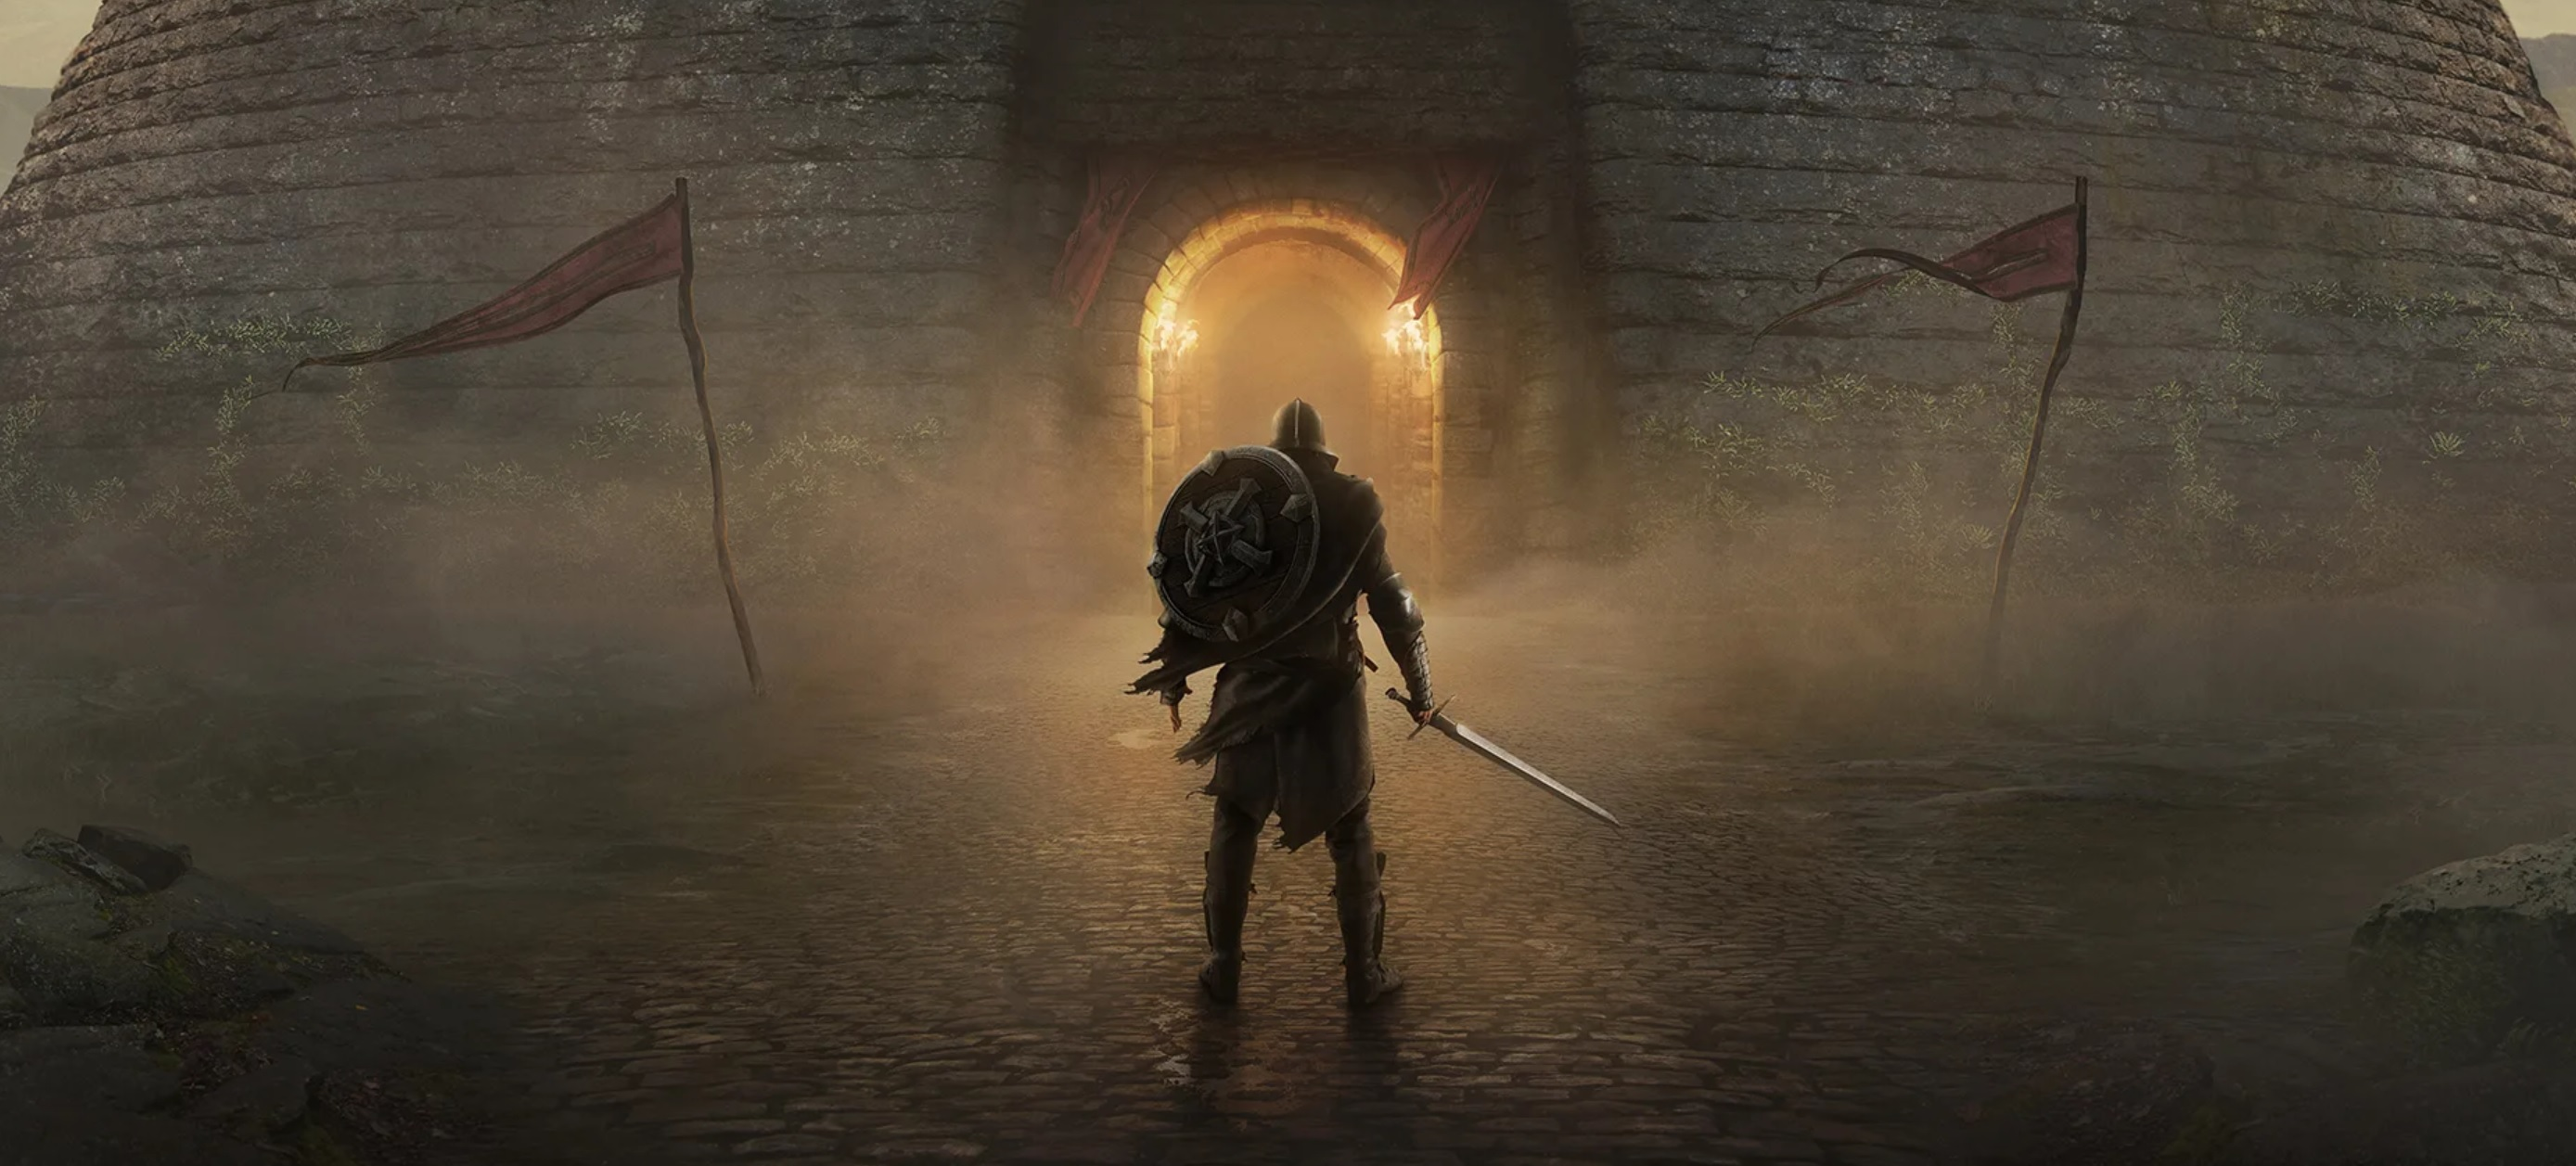 The Elder Scrolls: Blades, which has been floating in Switch limbo, finally gets a release window screenshot